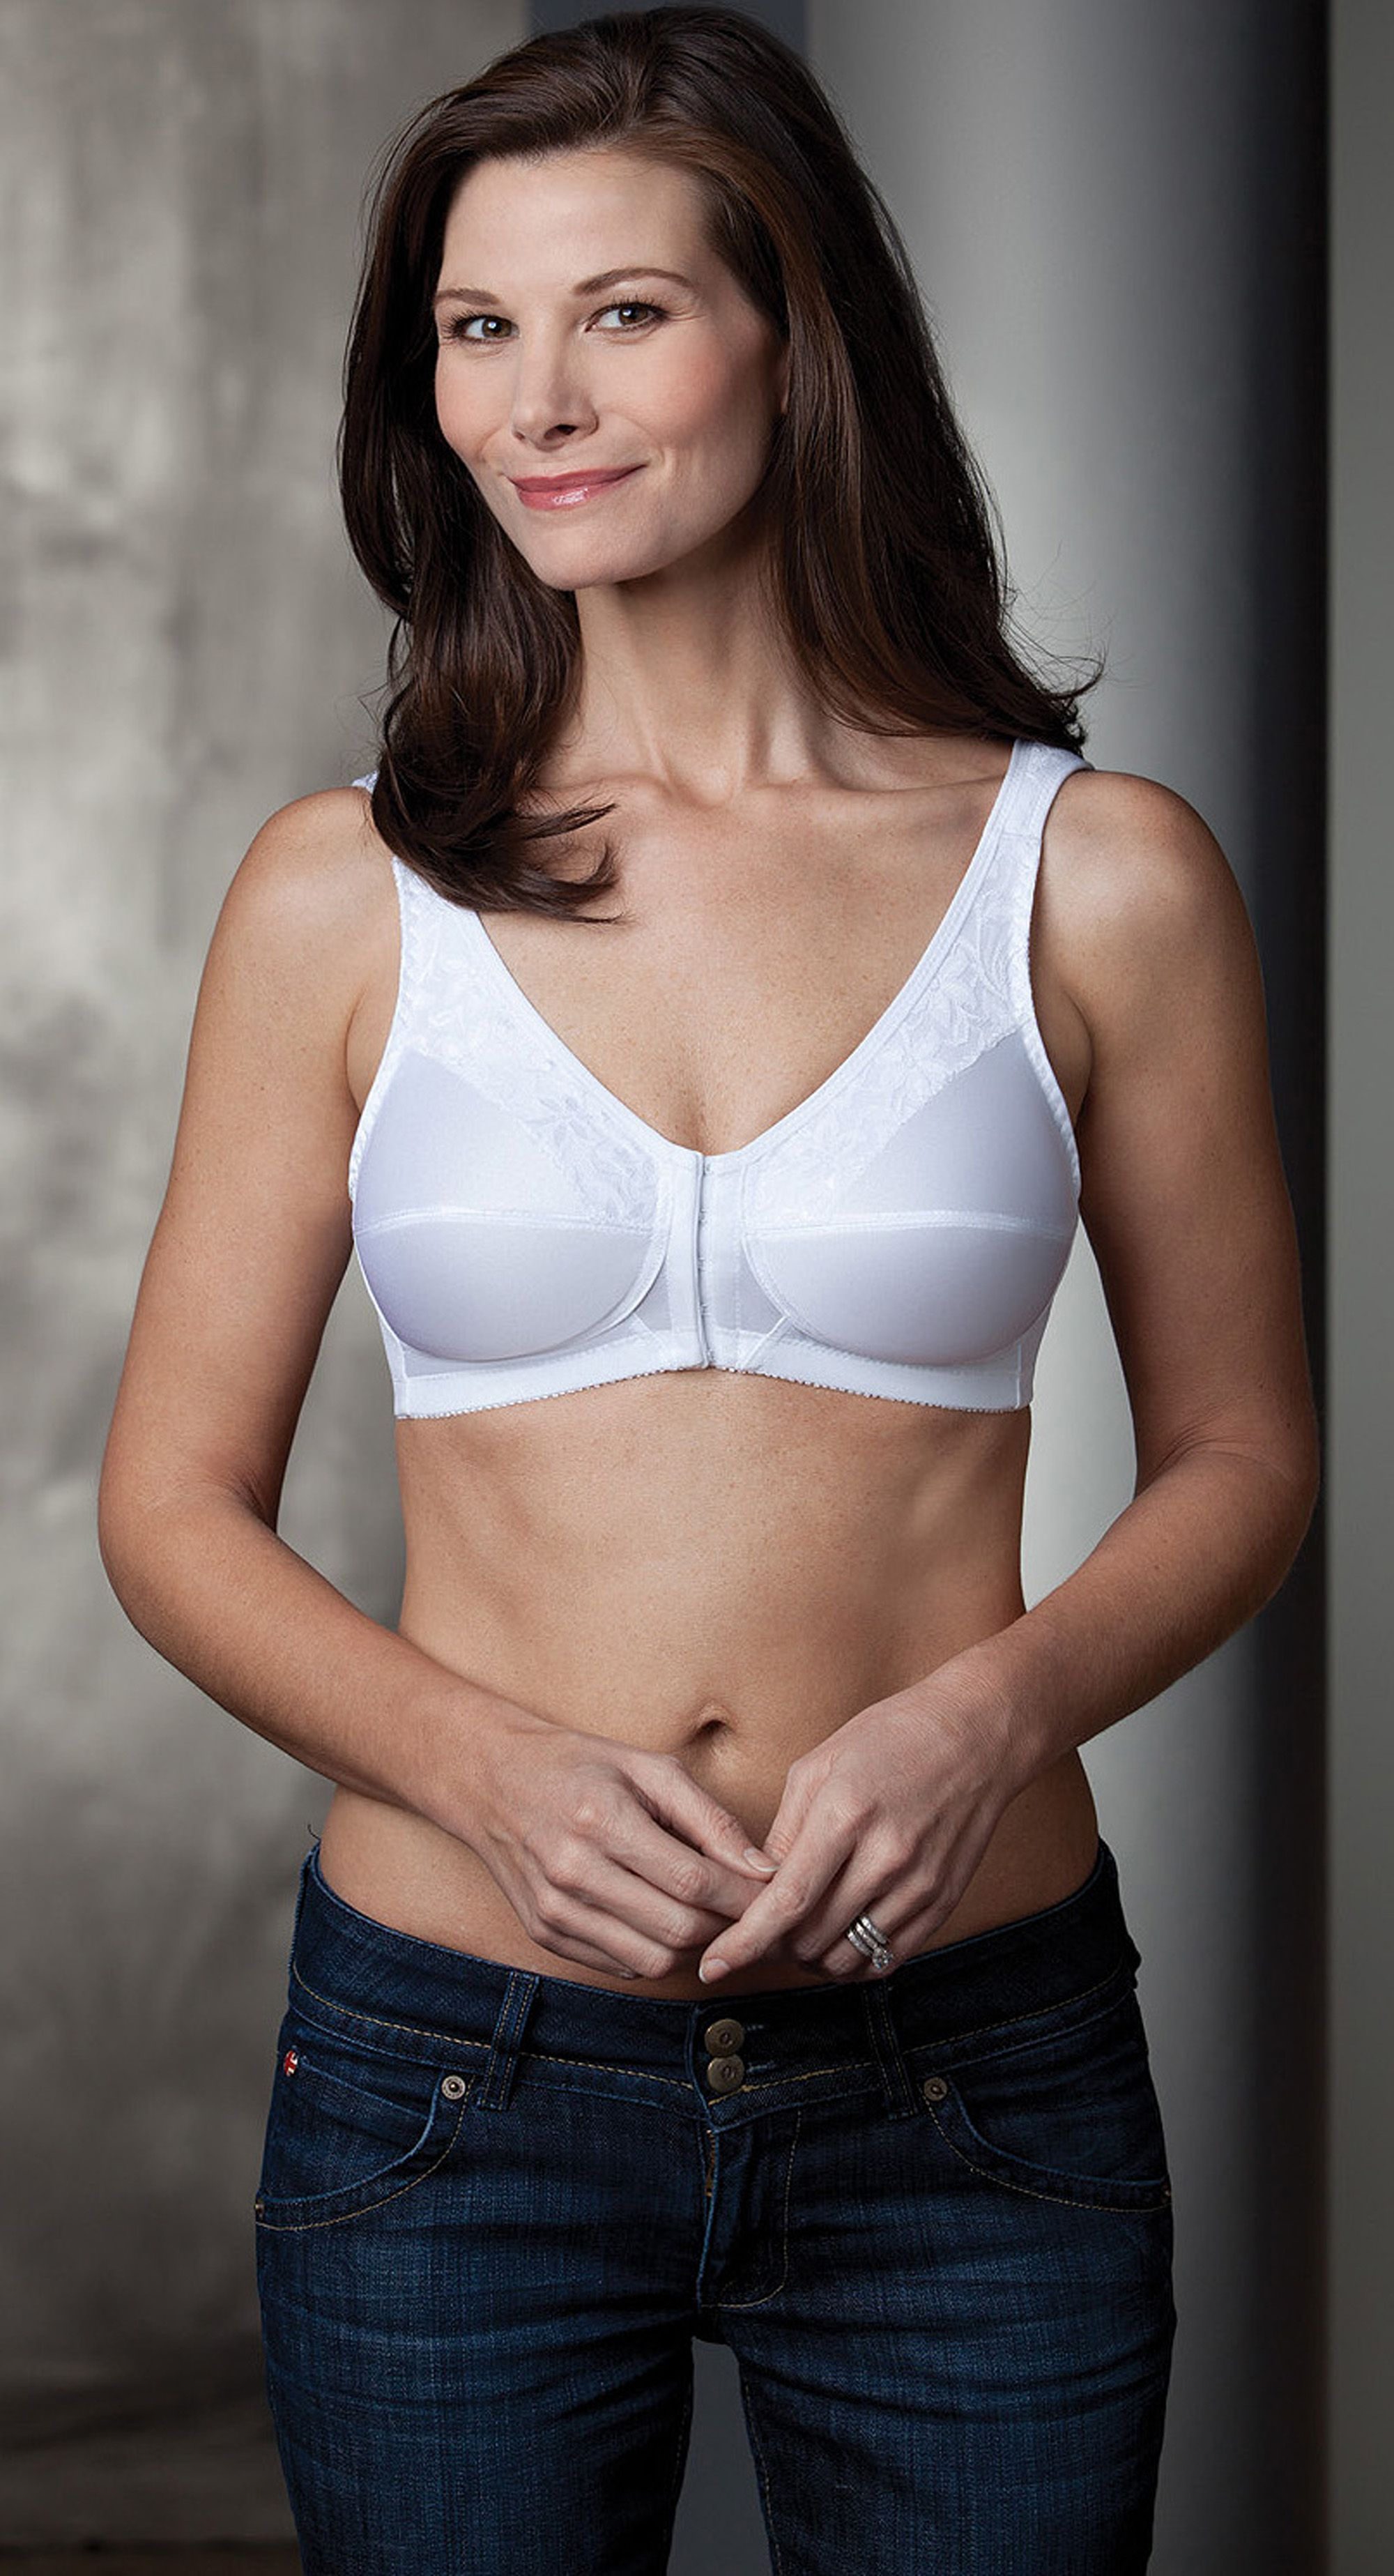 bbe6d42a93 Style 212 - Trulife Front Closure Mastectomy Bra- 212